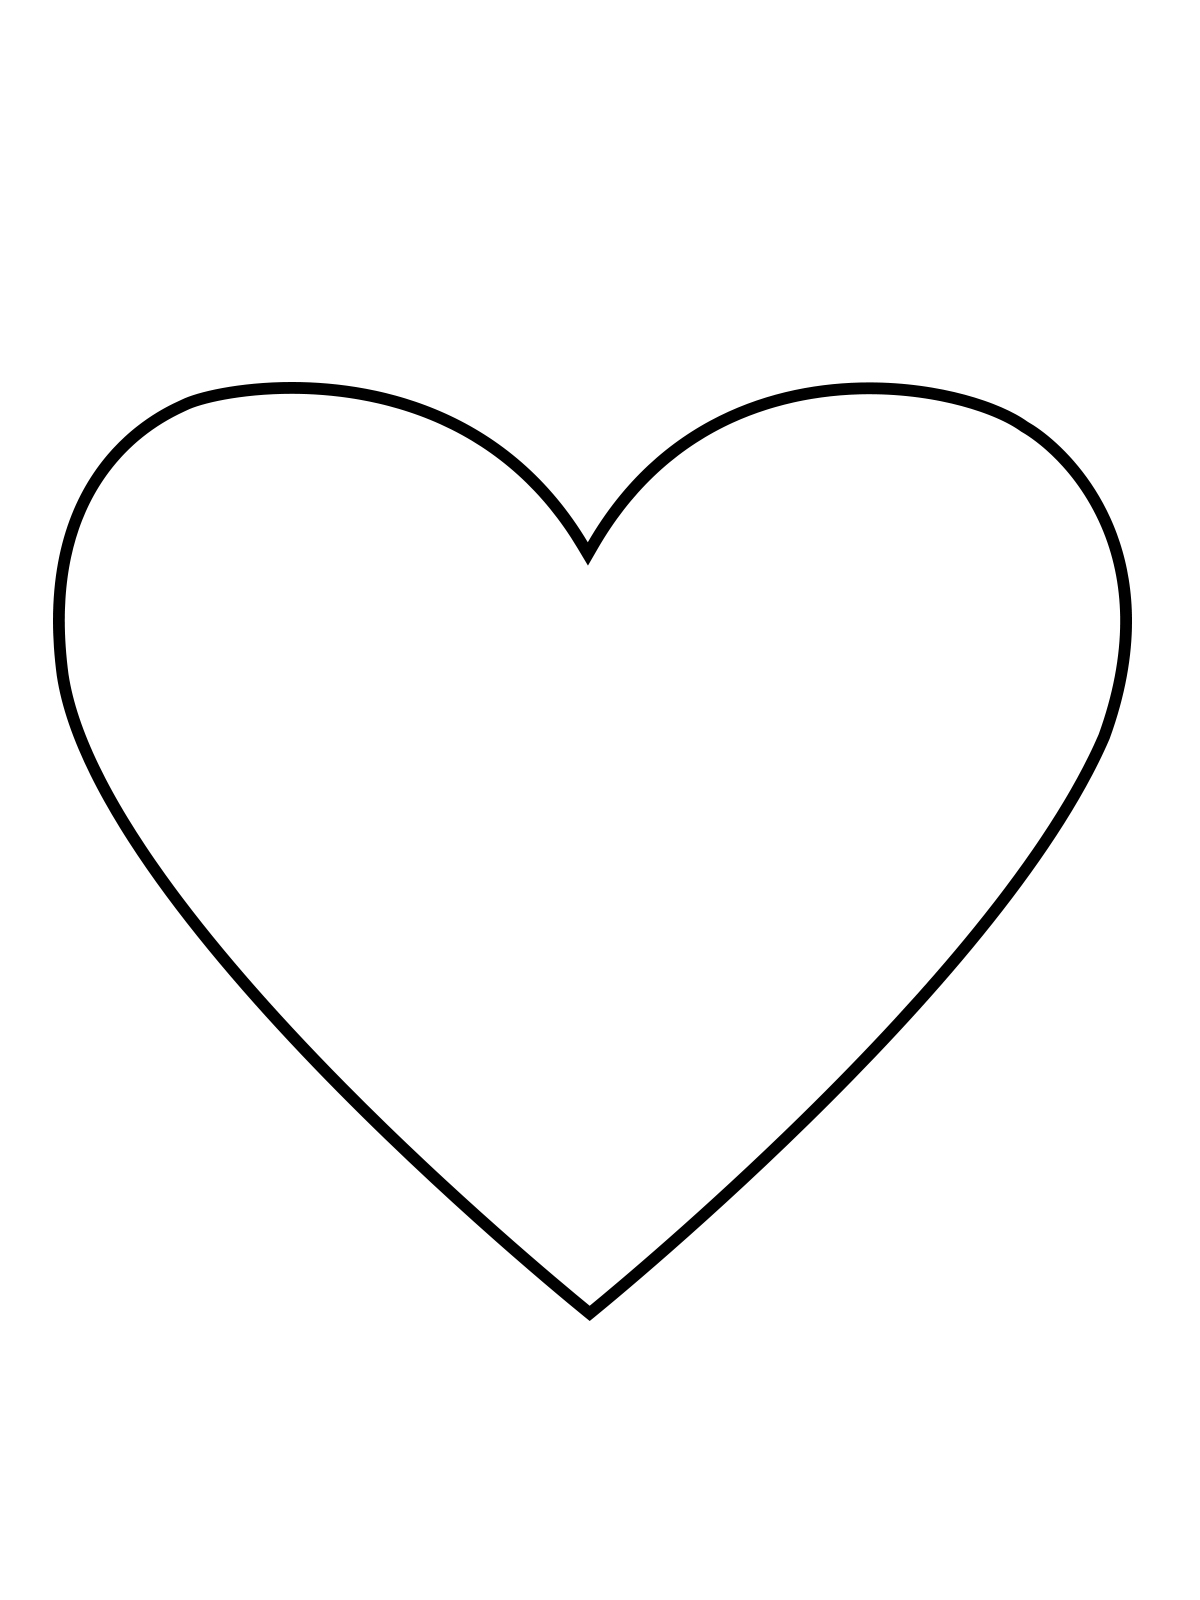 Simple Heart Line Art : Heart